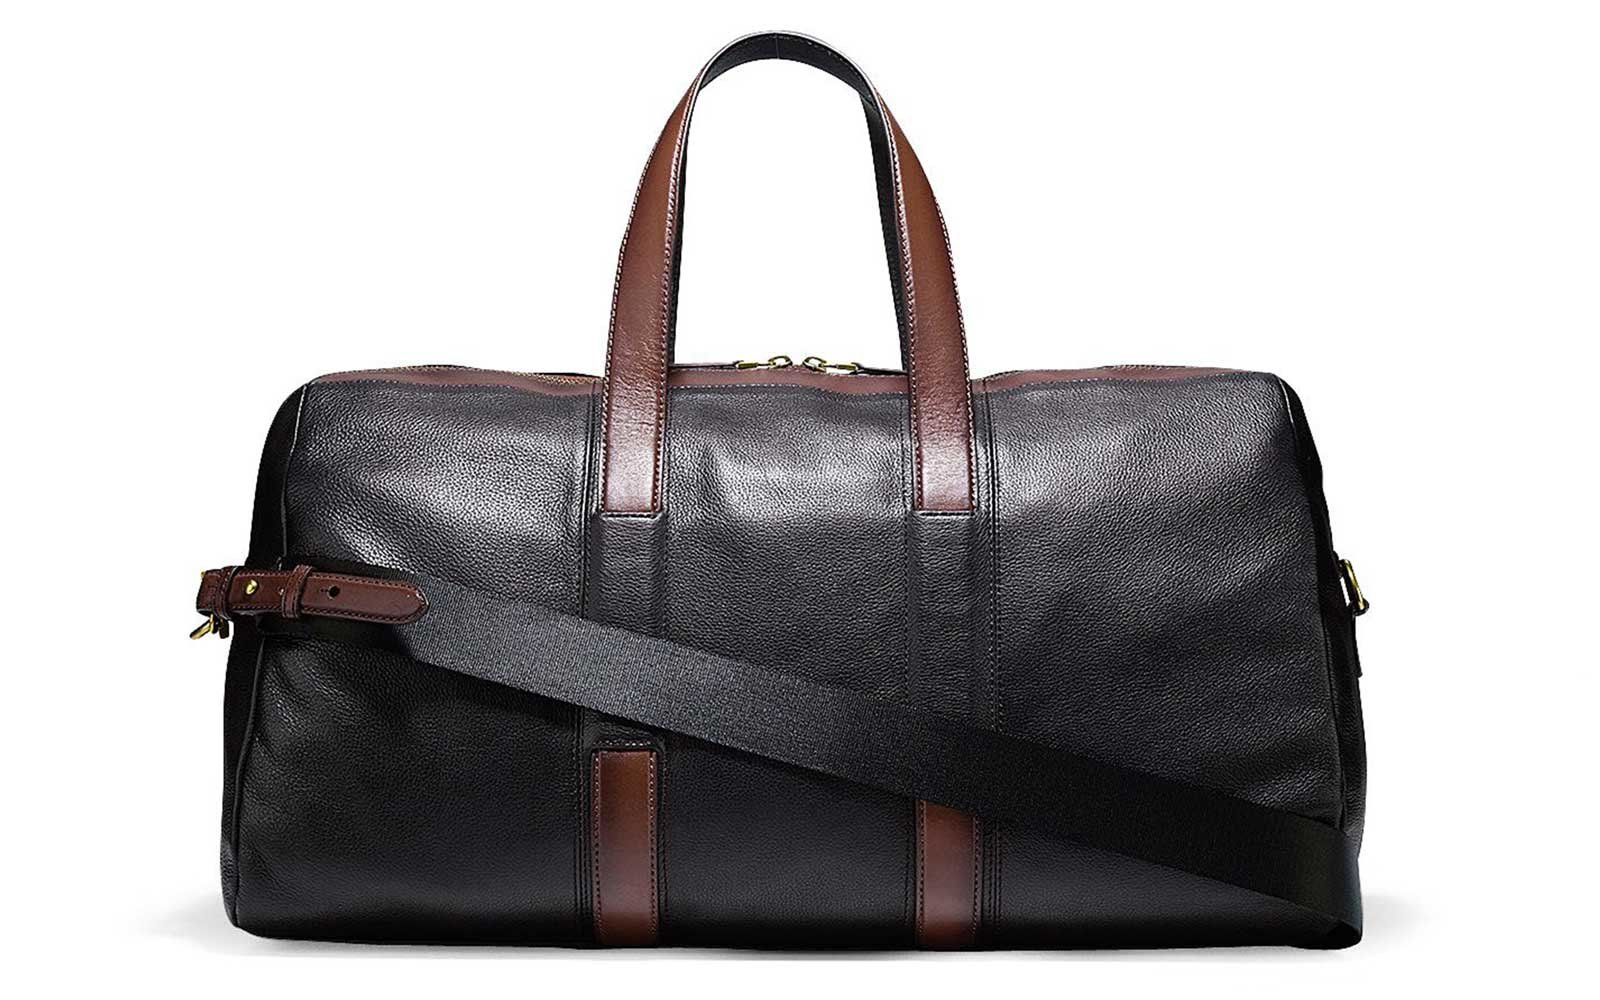 Cole Haan Duffel Bag for Travel